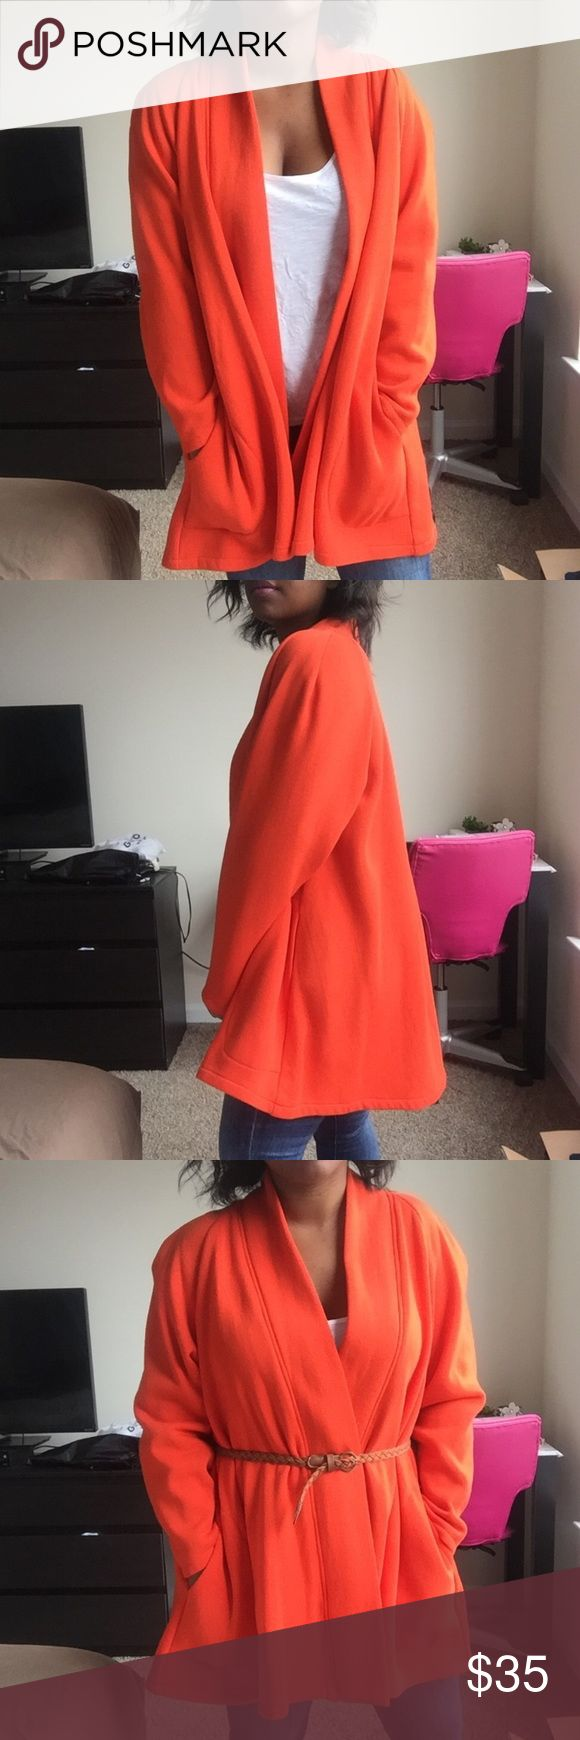 VINTAGE Orange Open Swing Coat Super soft and warm. Has pockets. I don't see a size tag - I believe it's one size fits all. Had shoulder pads but I cut them out. No stains or holes. Vintage Jackets & Coats